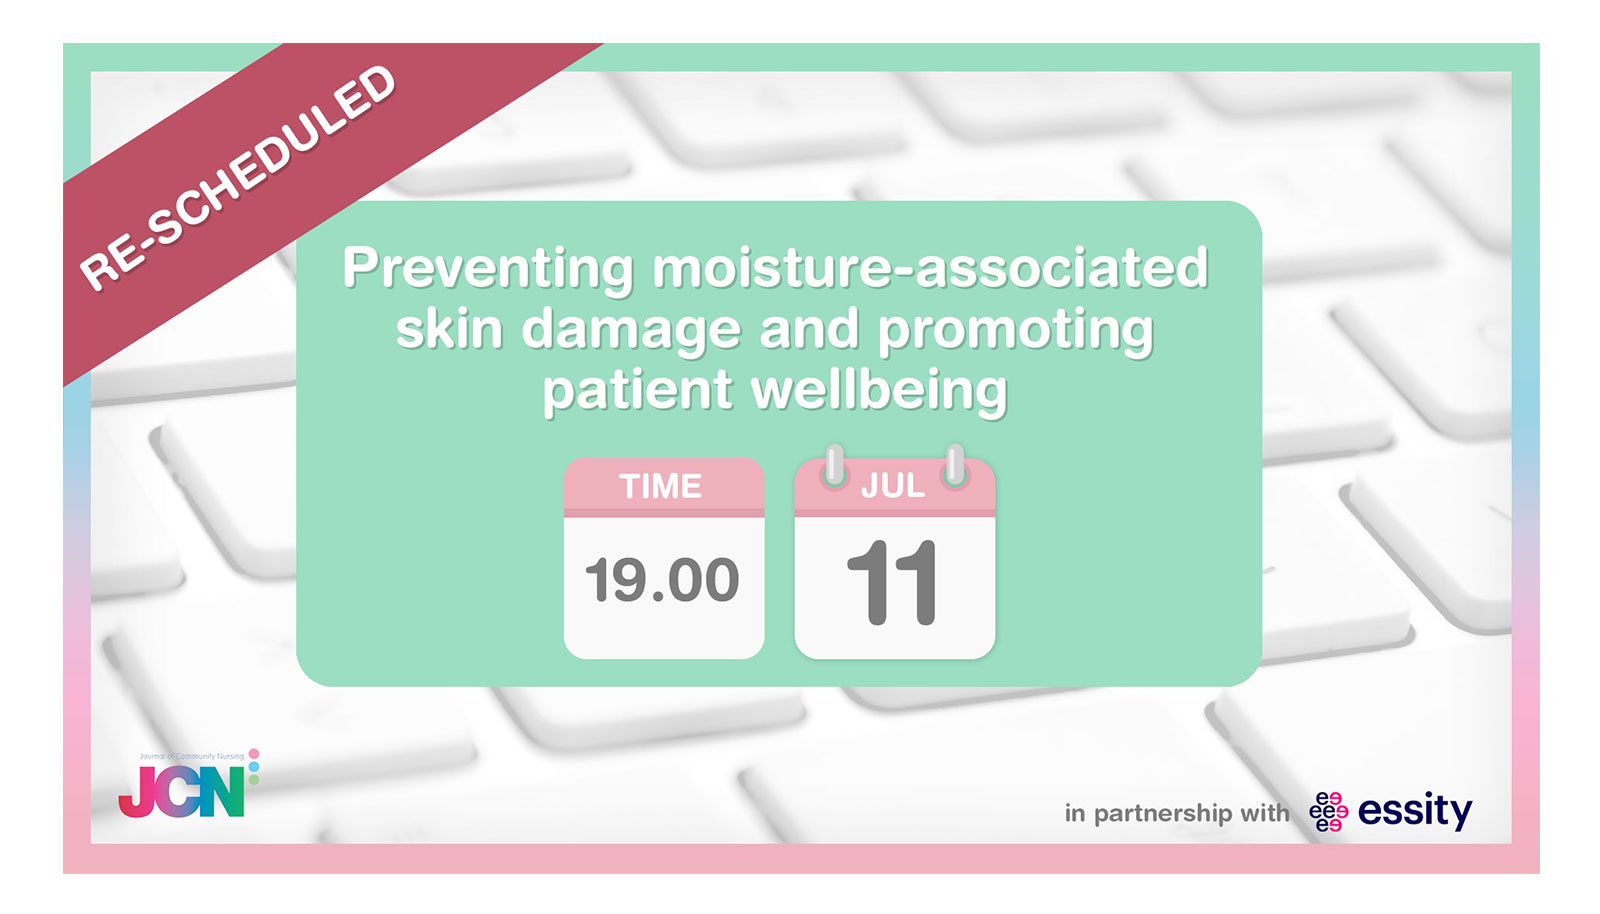 Facebook Live: Preventing moisture-associated skin damage and promoting patient wellbeing